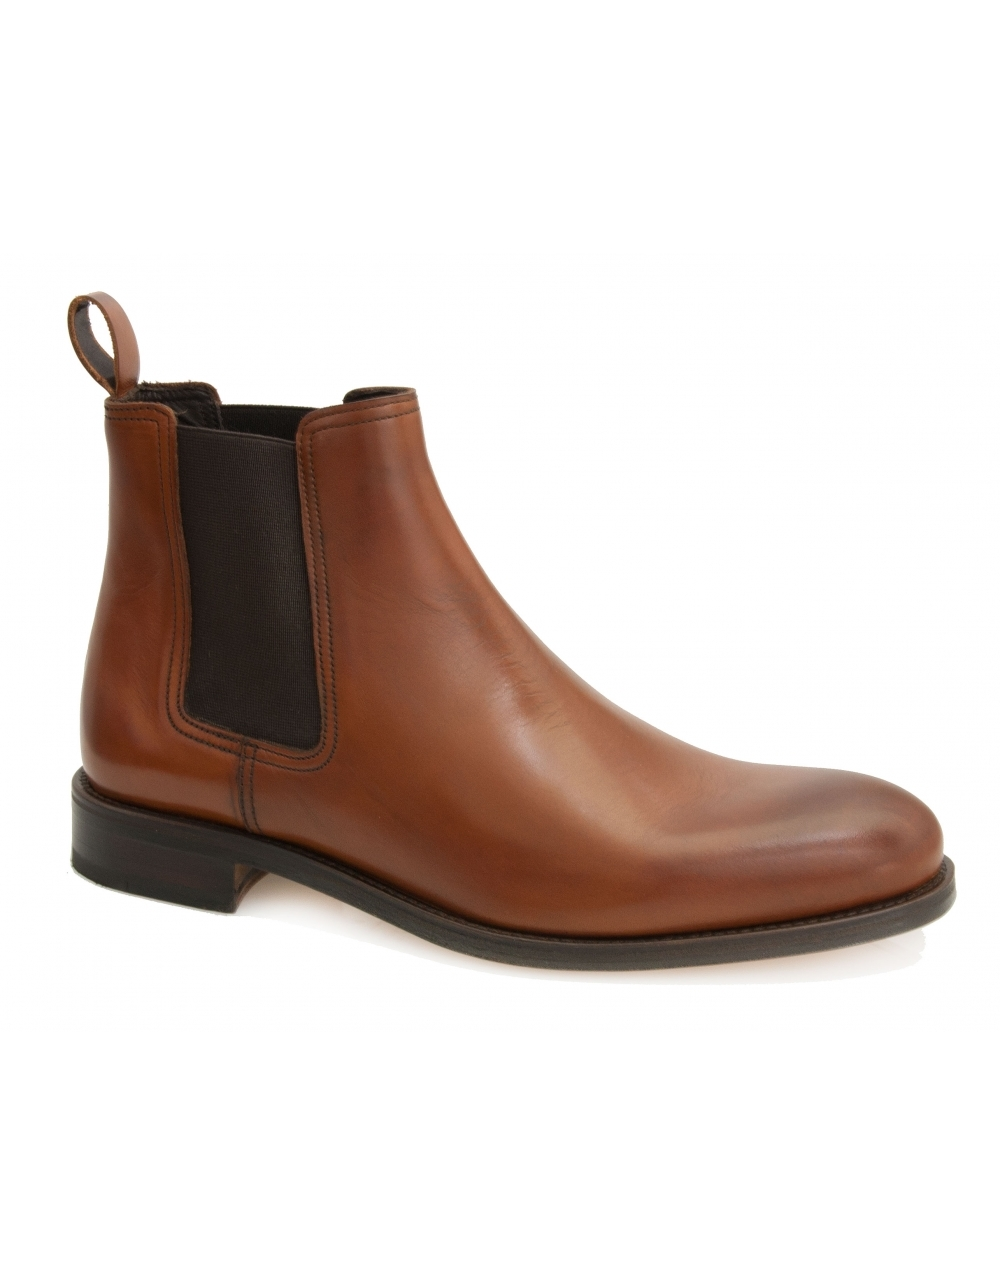 d1c574f30d45 Stables Calf Leather Chelsea Boot - Tan | Fields Menswear